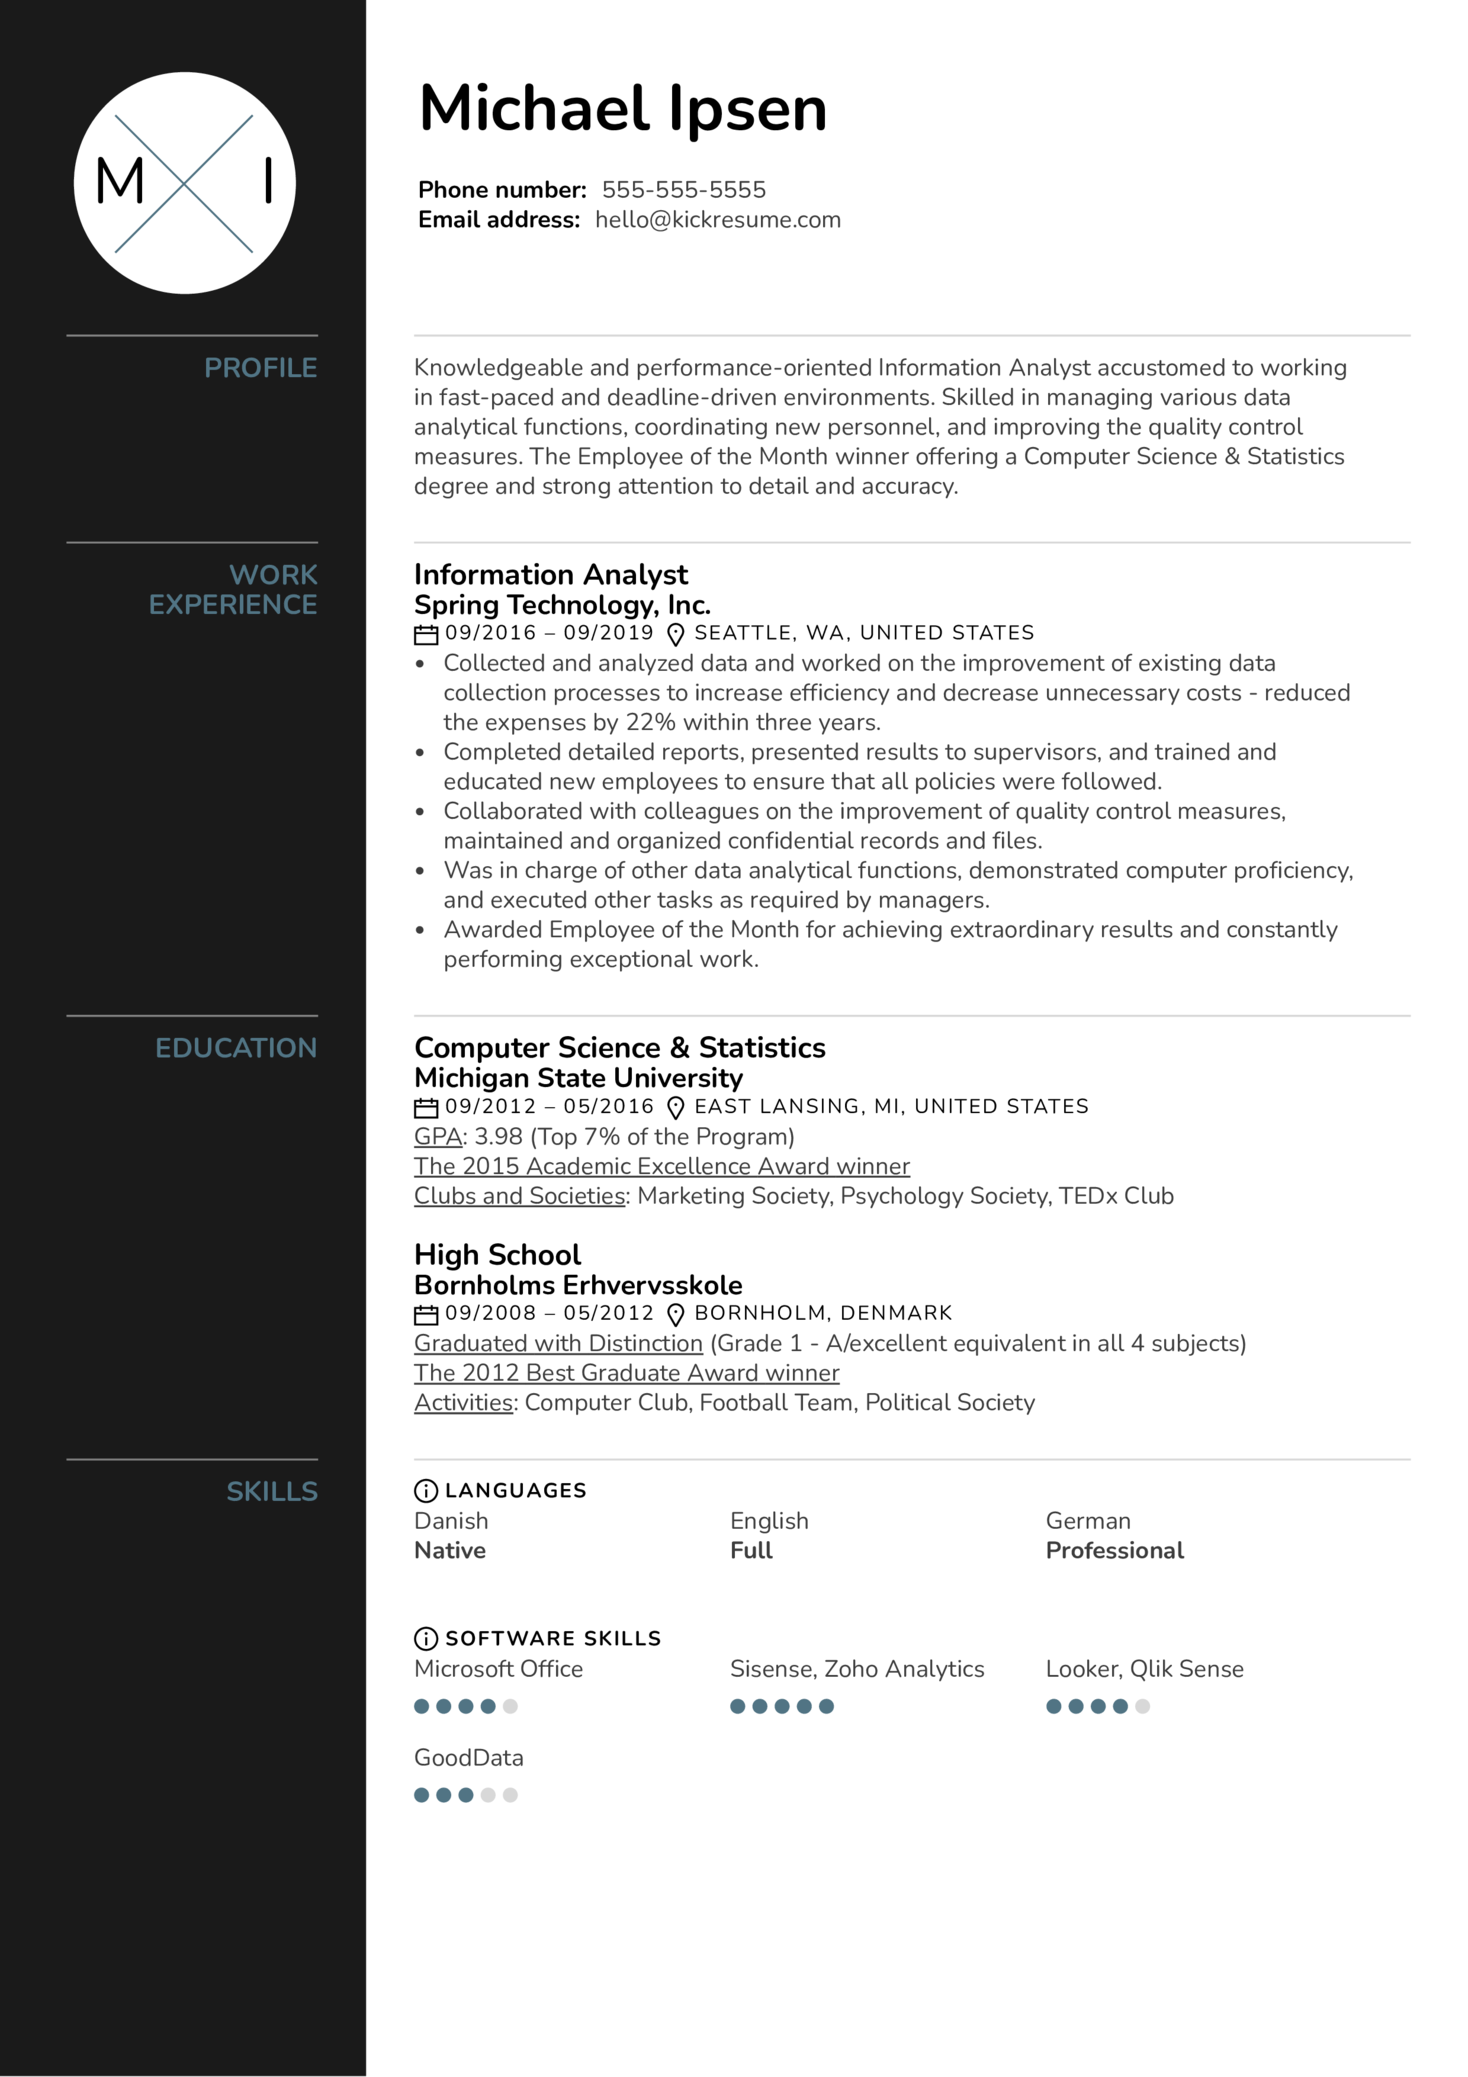 Information Analyst Resume Example (parte 1)